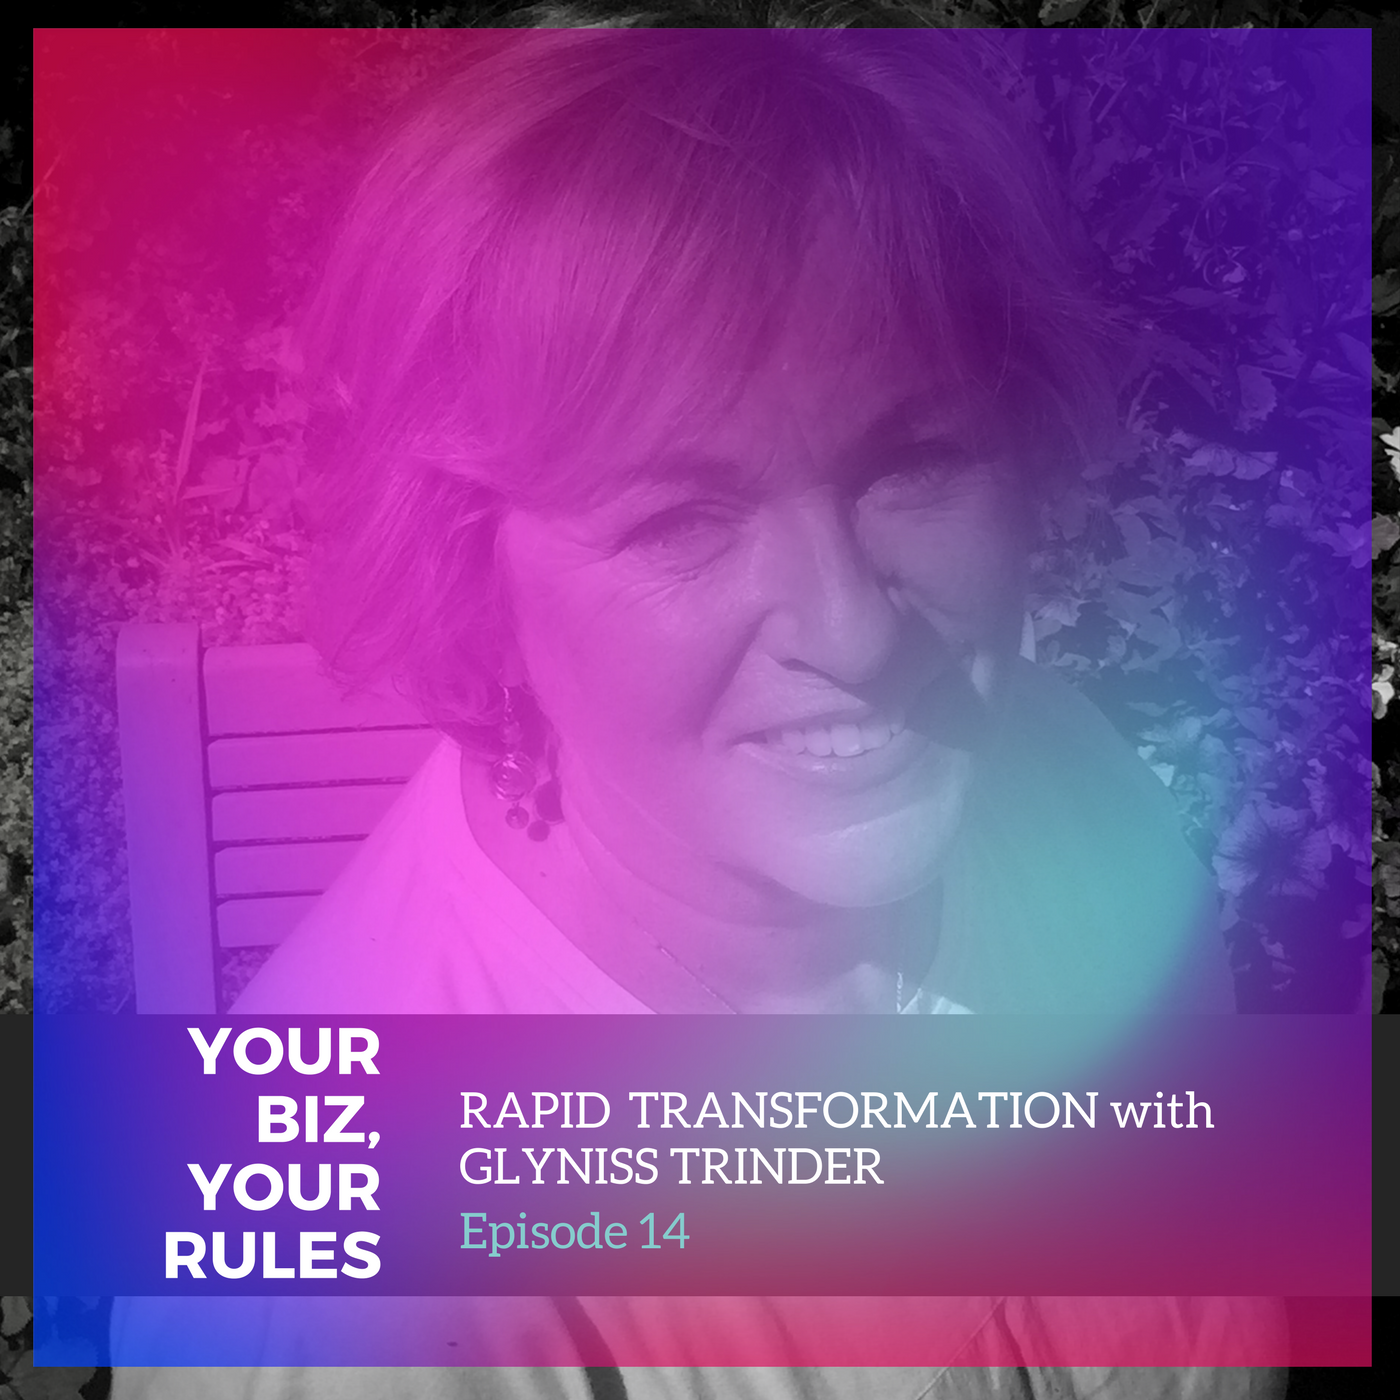 Artwork for Ep 14: Rapid transformation with Glyniss Trinder